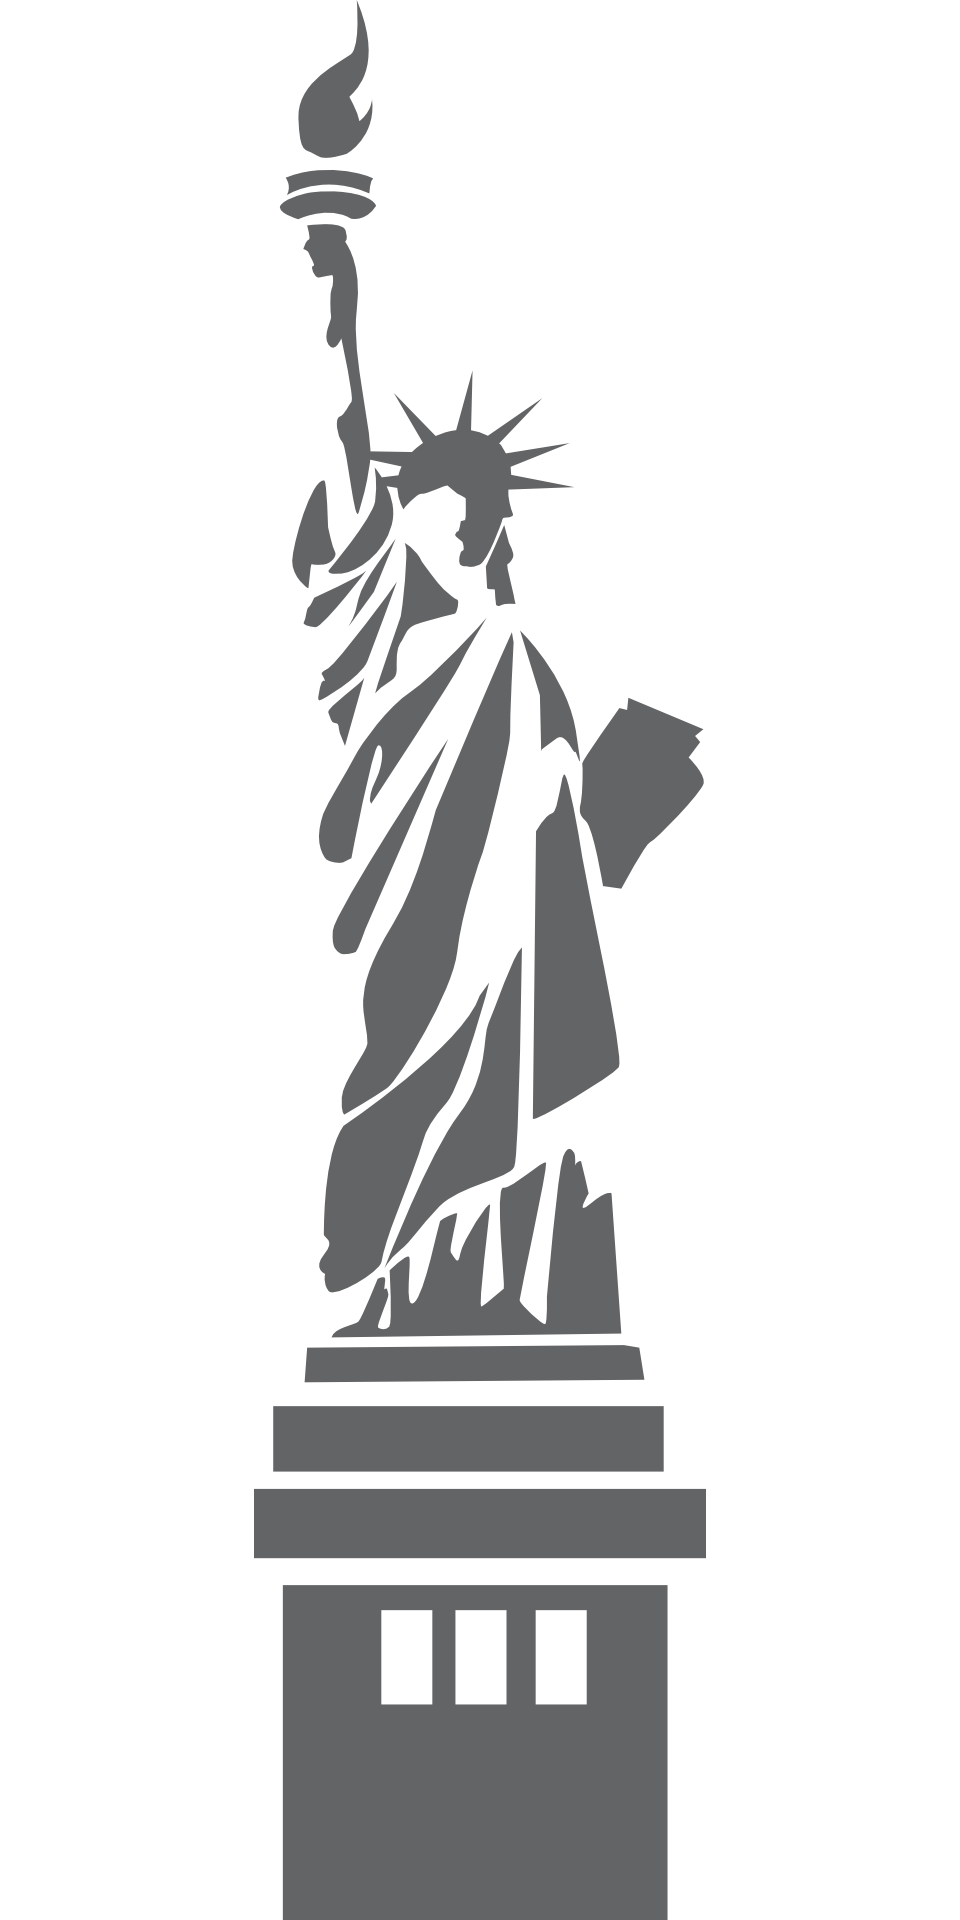 Statue of liberty silhouette clipart clipart suggest for Statue of liberty drawing template